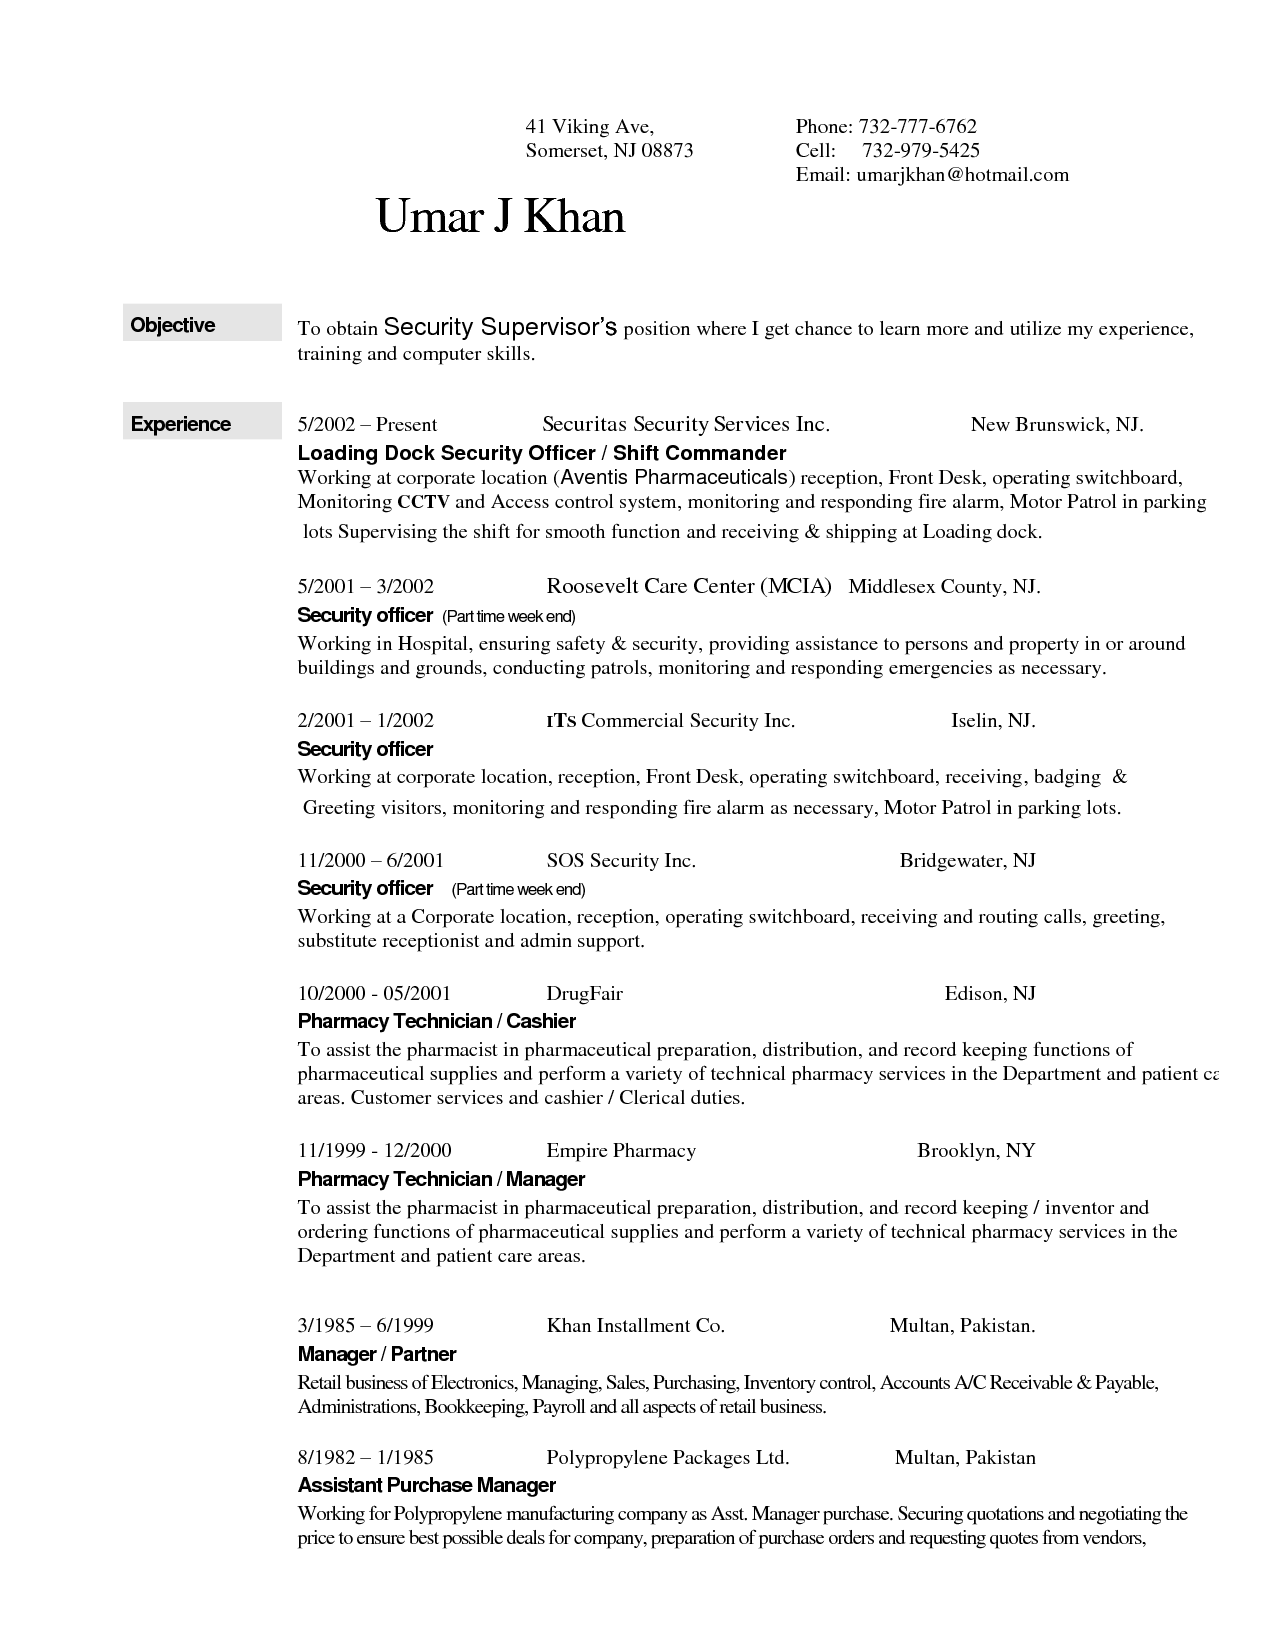 Resume For Security Guard